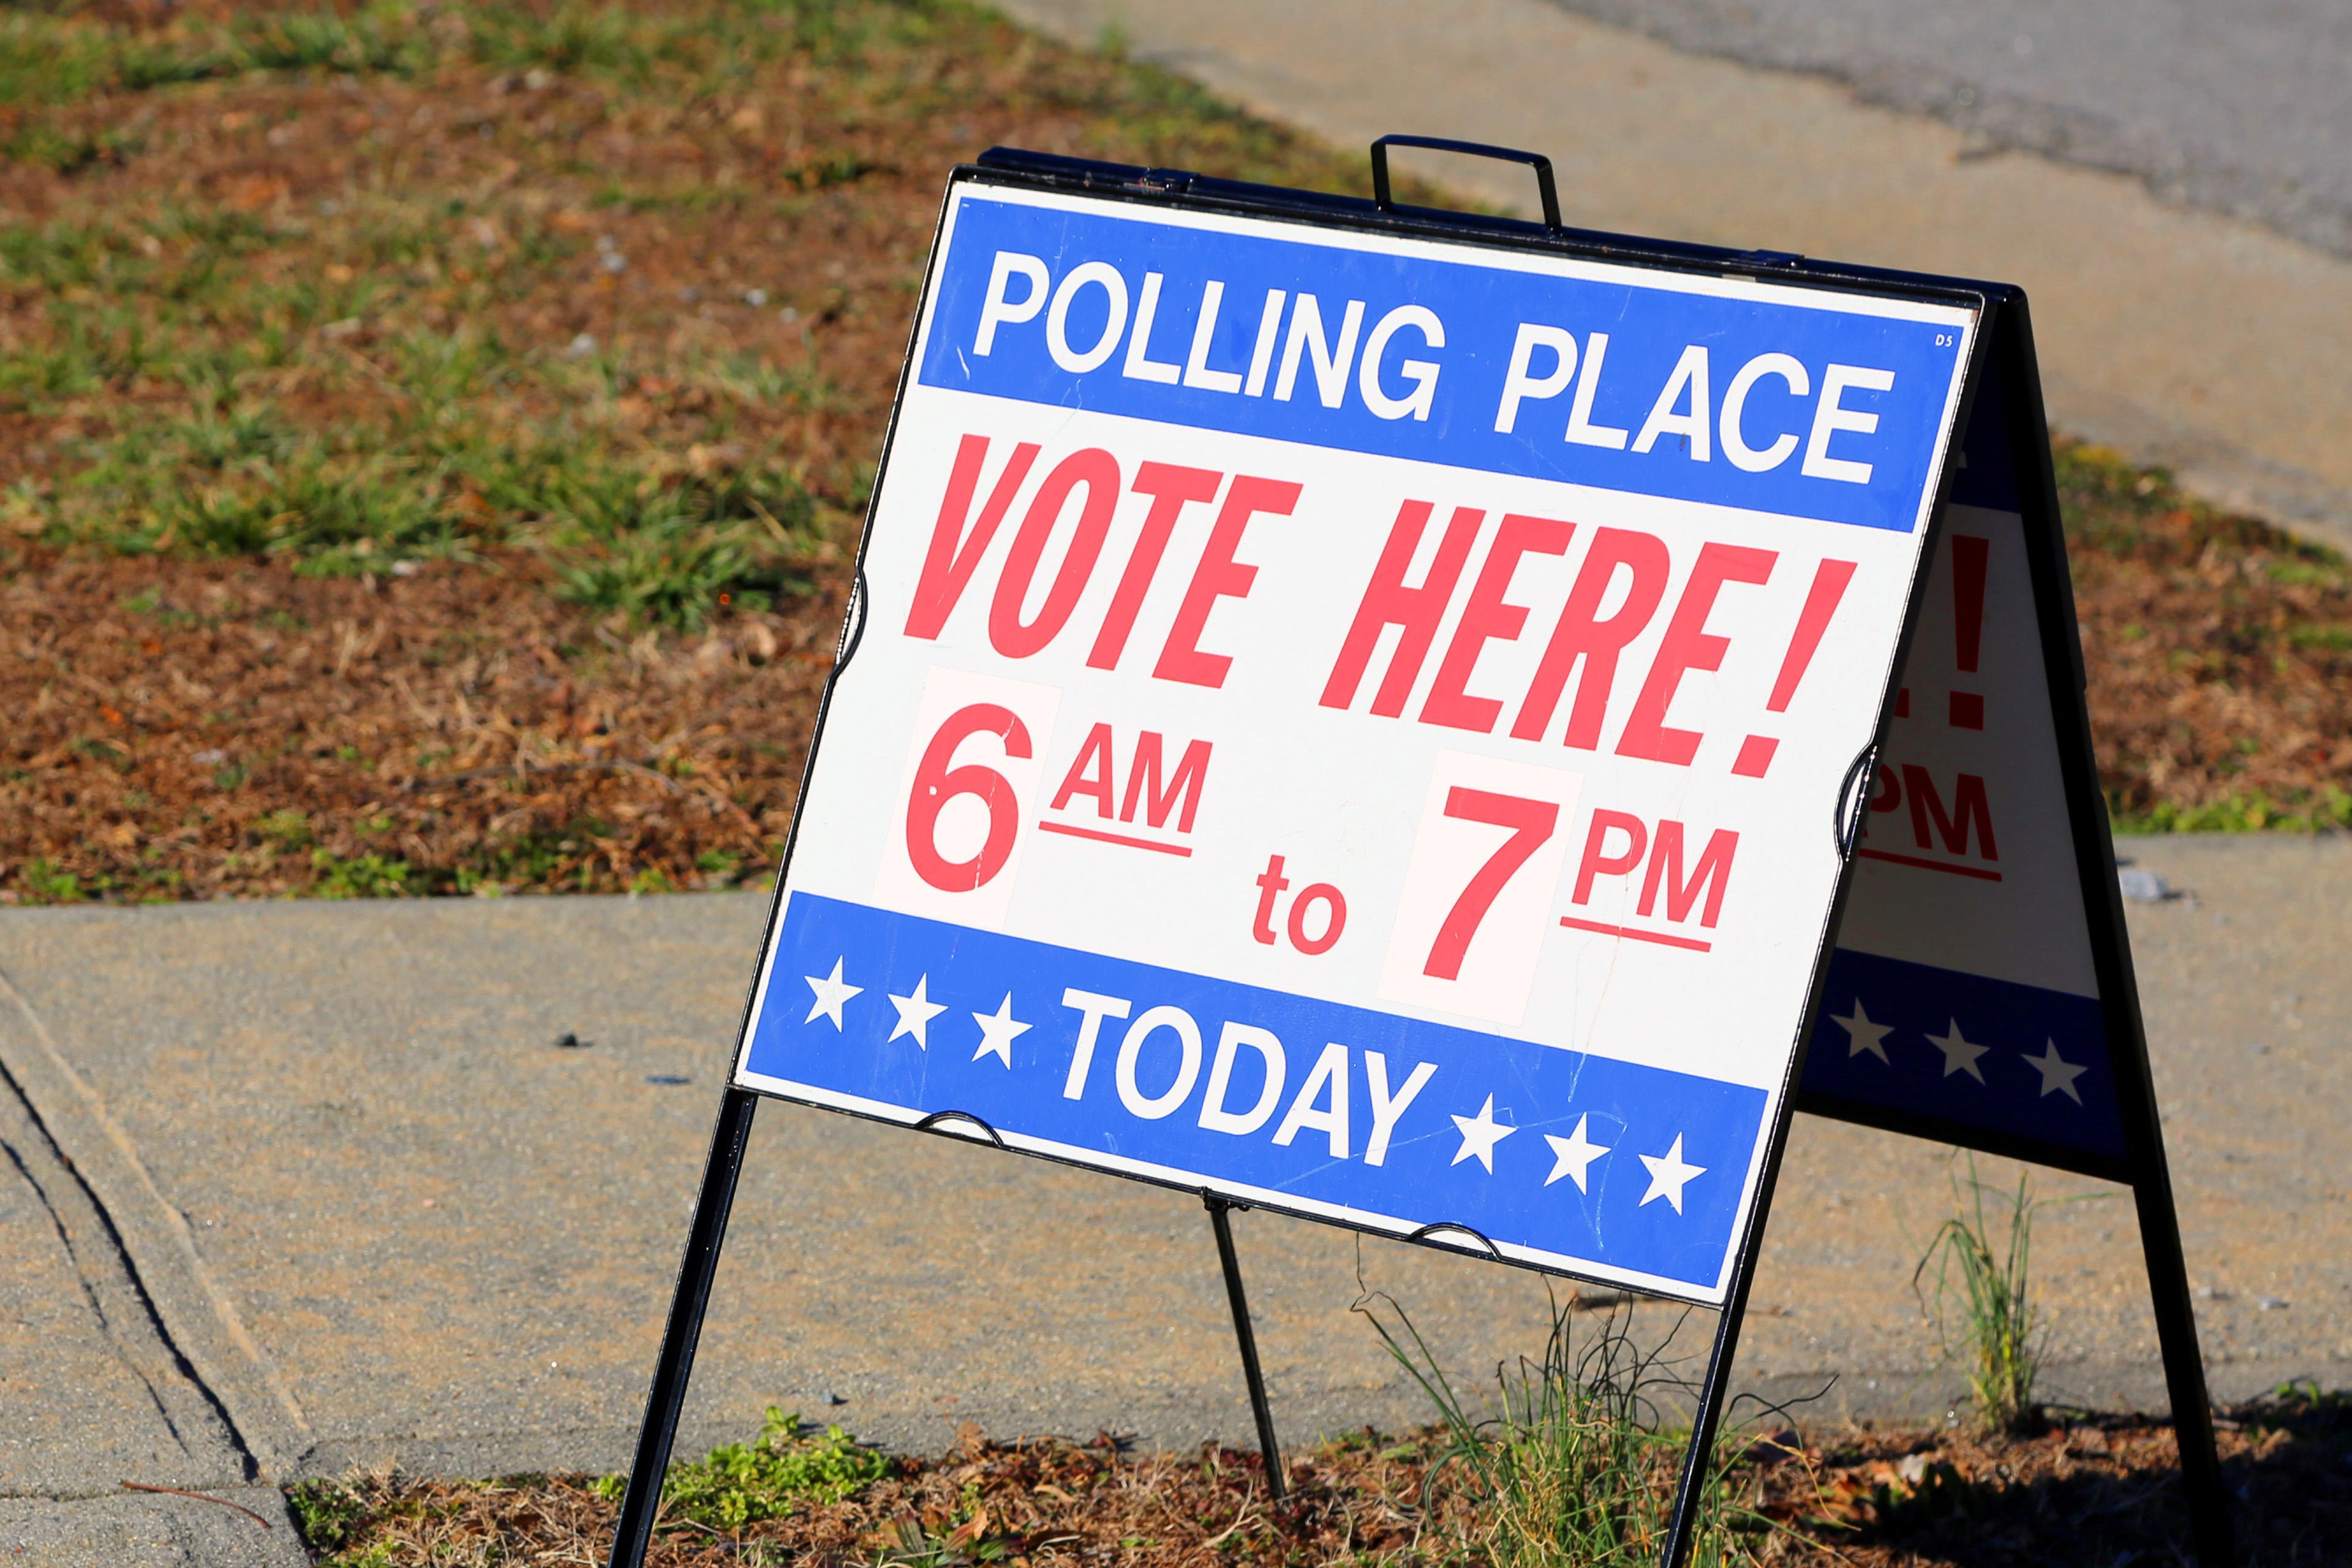 POLLING-PLACE-11